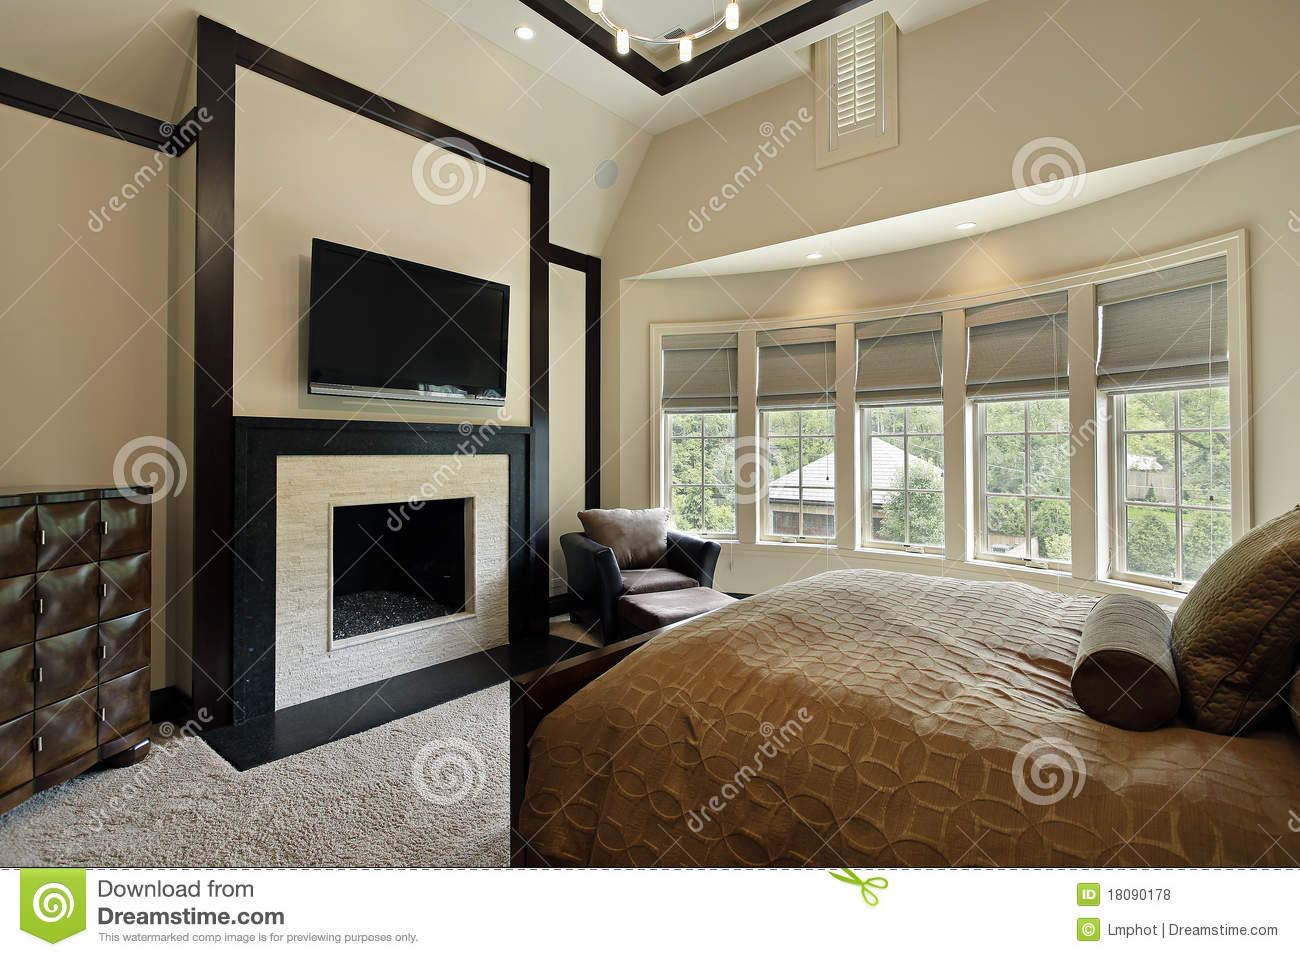 Master bedroom with wall of windows royalty free stock photos image 18090178 Master bedroom bed against window